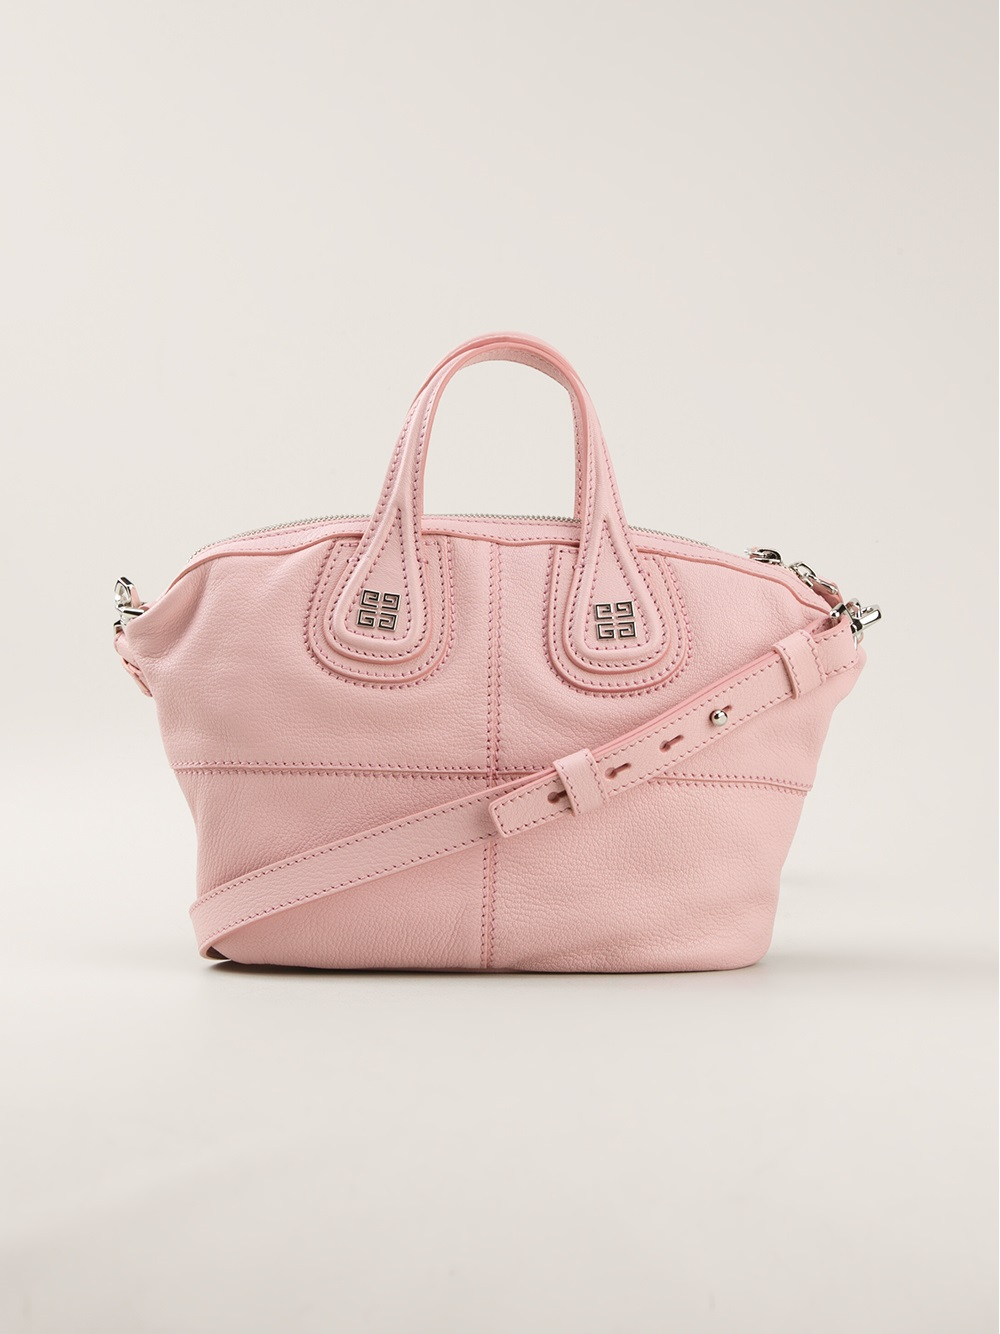 7b3075a7cb82 Lyst - Givenchy Nightingale Mini Tote Bag in Pink